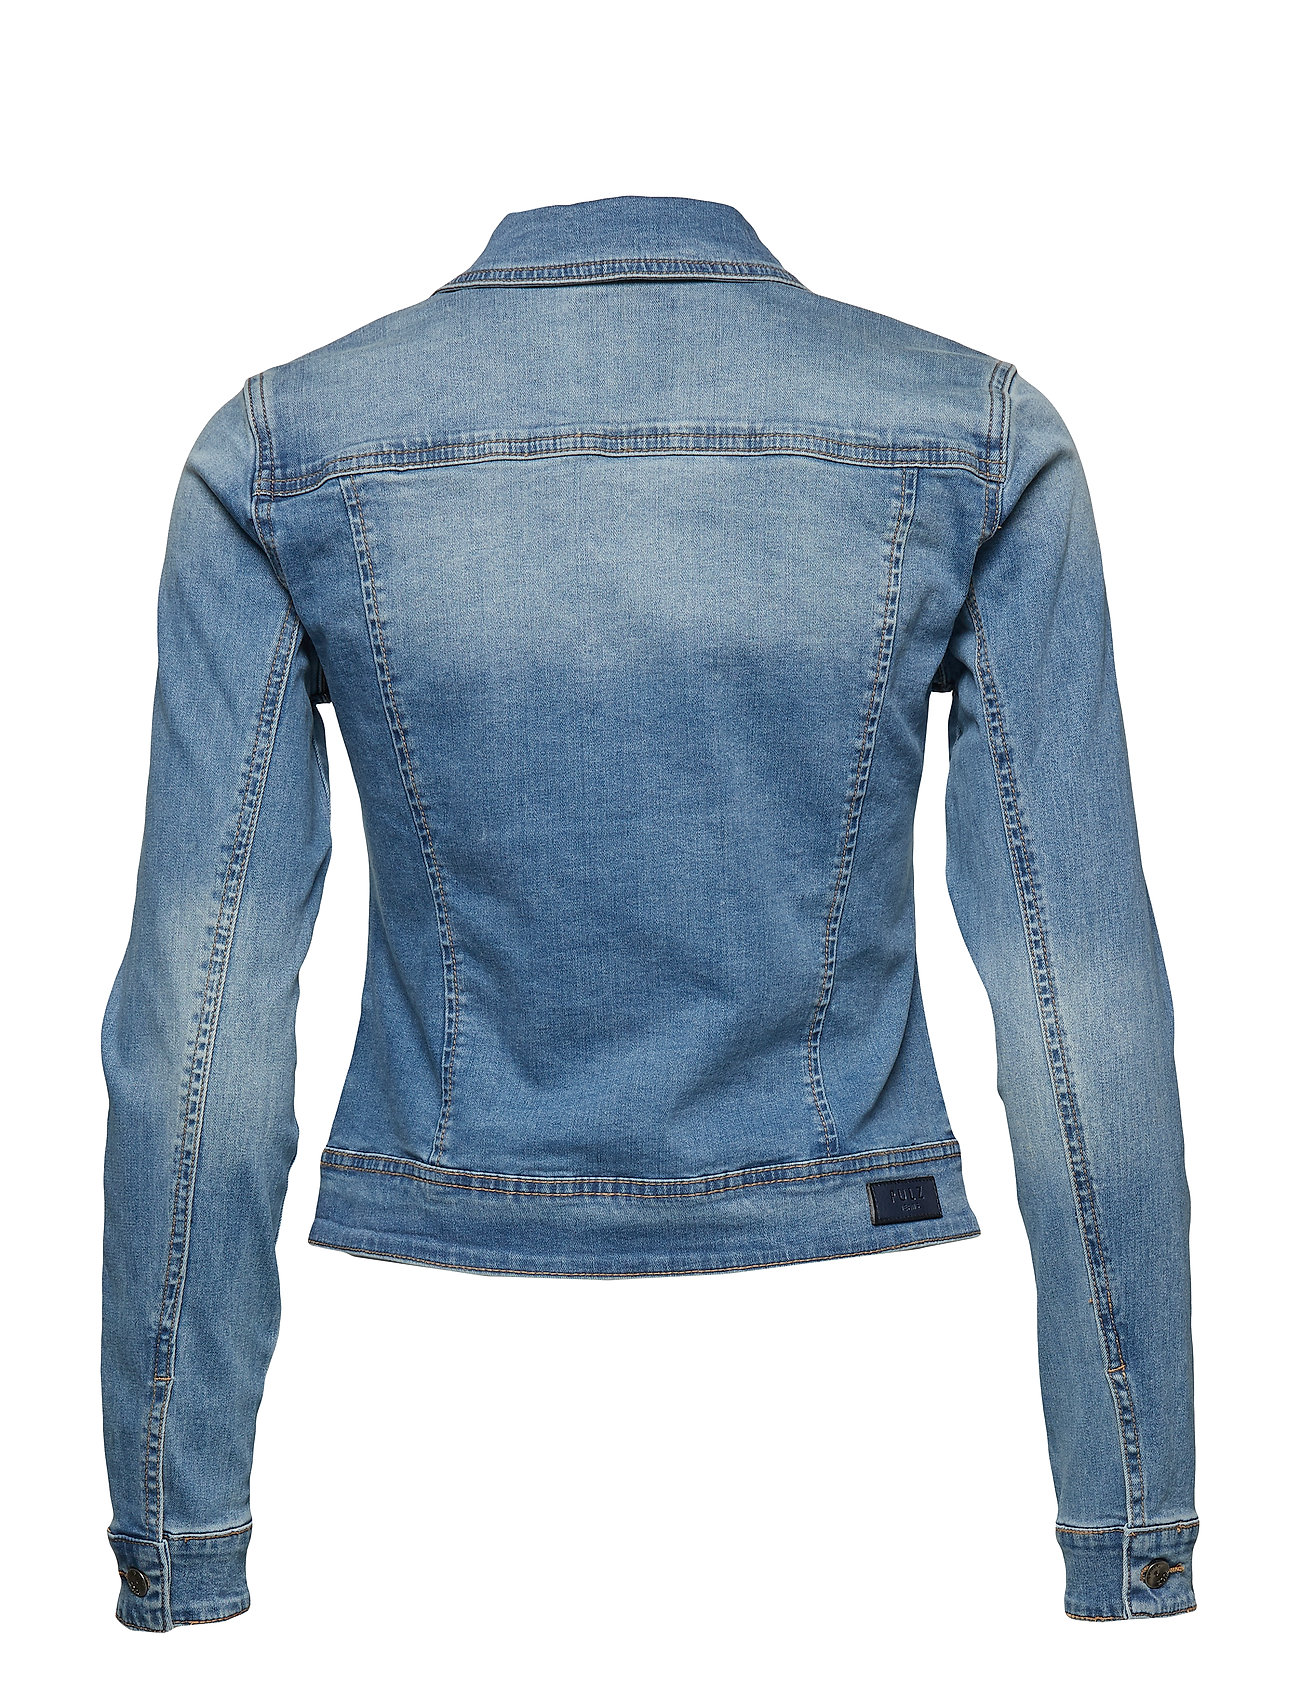 ea4dccea PULZ denimjakker – Sira Denim Jacket til dame i LIGHT BLUE DENIM ...